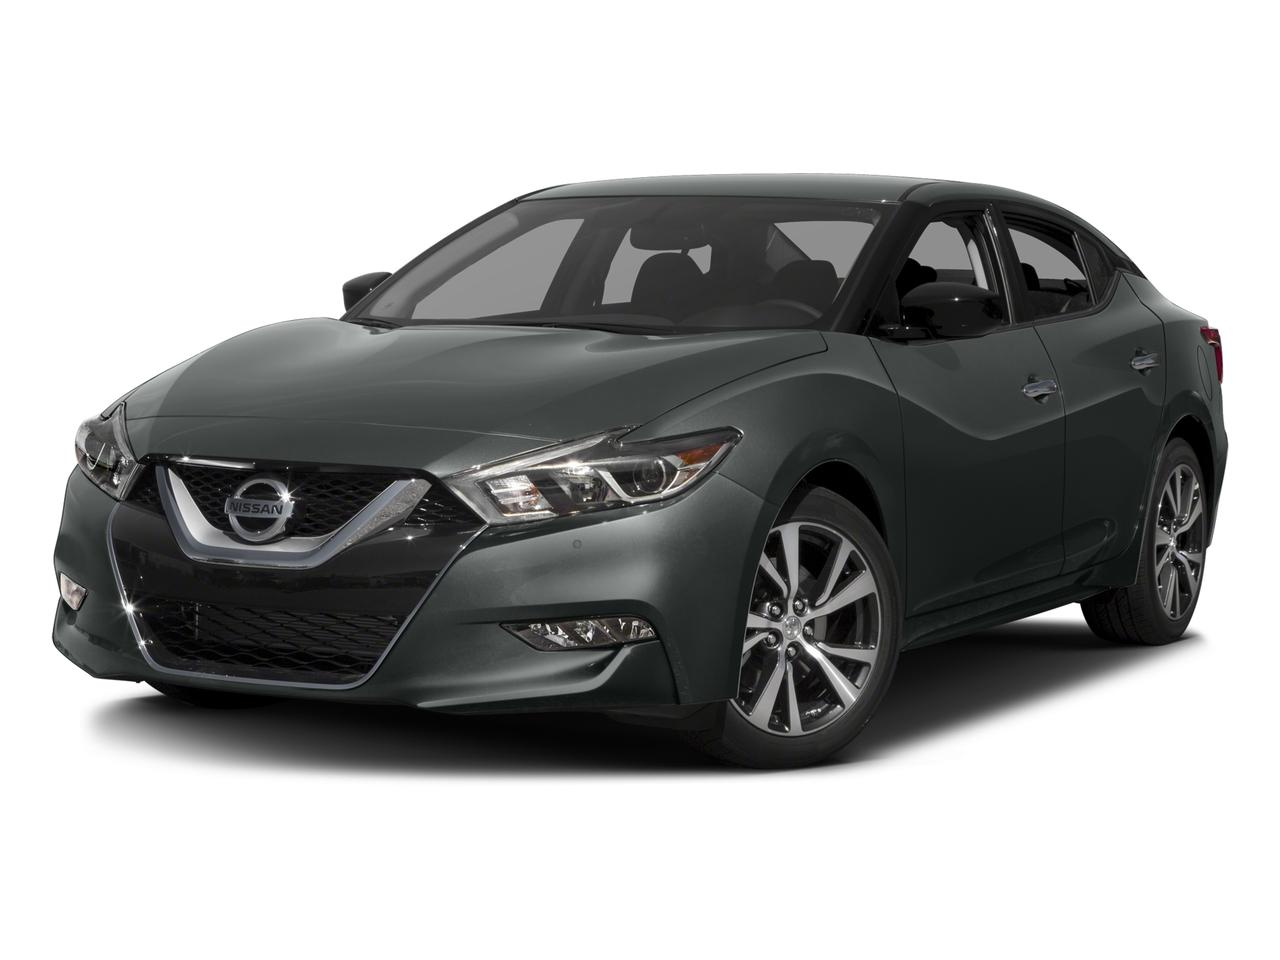 2017 Nissan Maxima Vehicle Photo in Tucson, AZ 85705